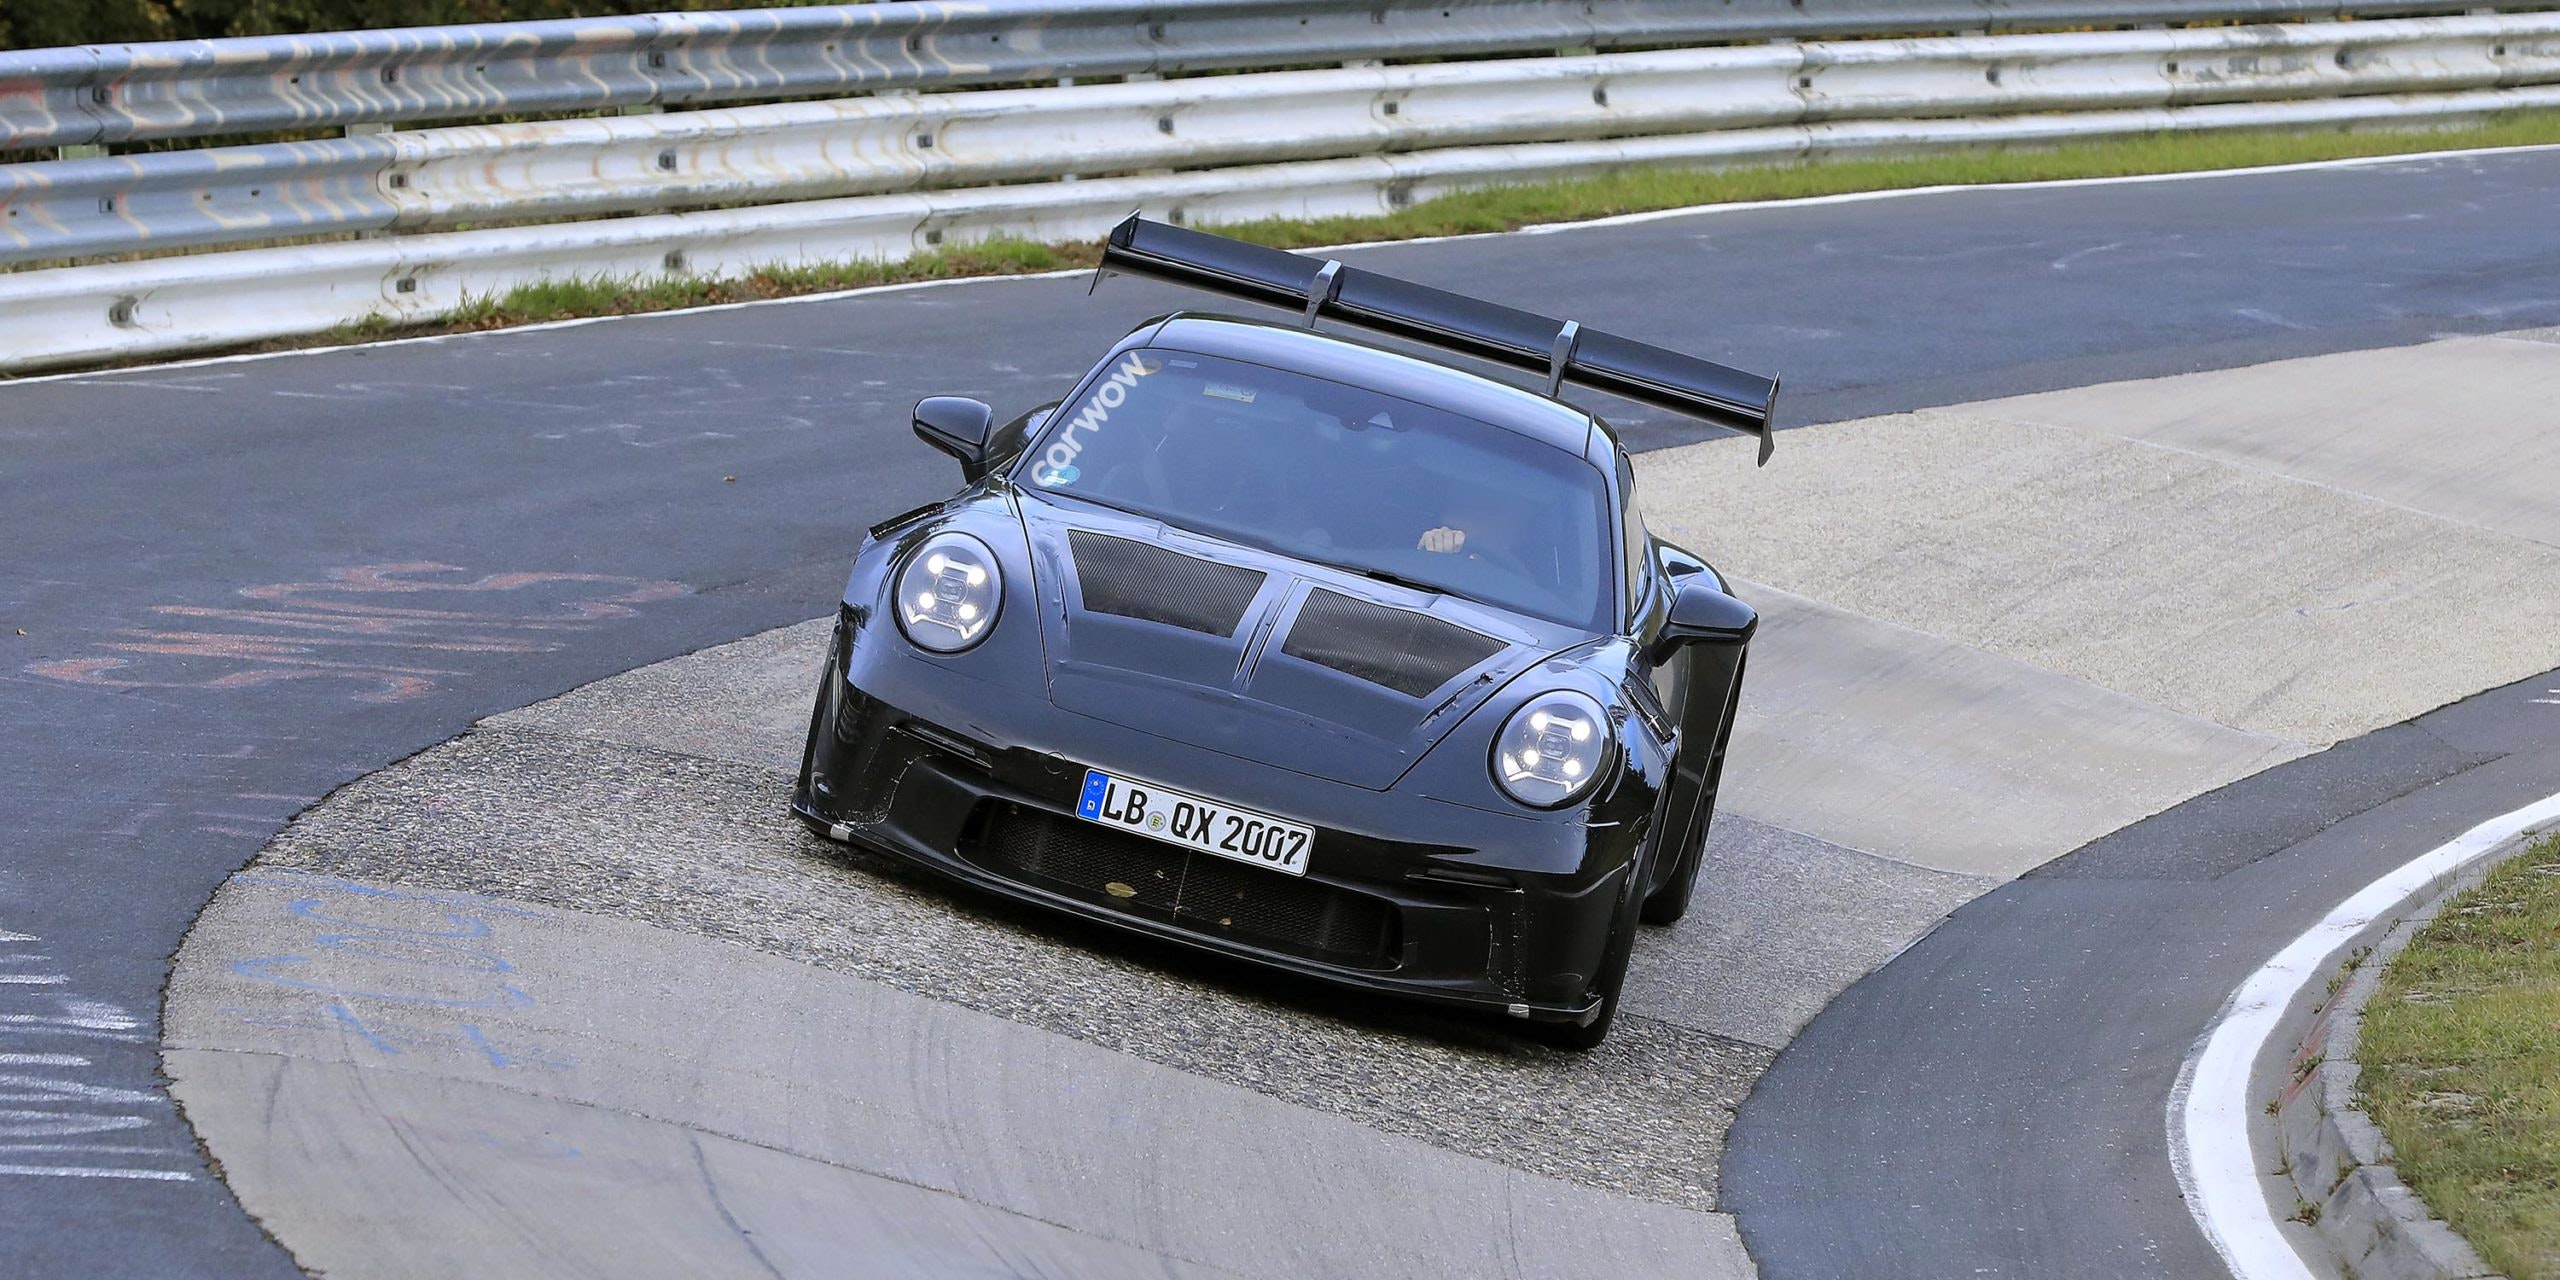 New Porsche 911 992 Gt3 Teased Price Specs And Release Date Carwow